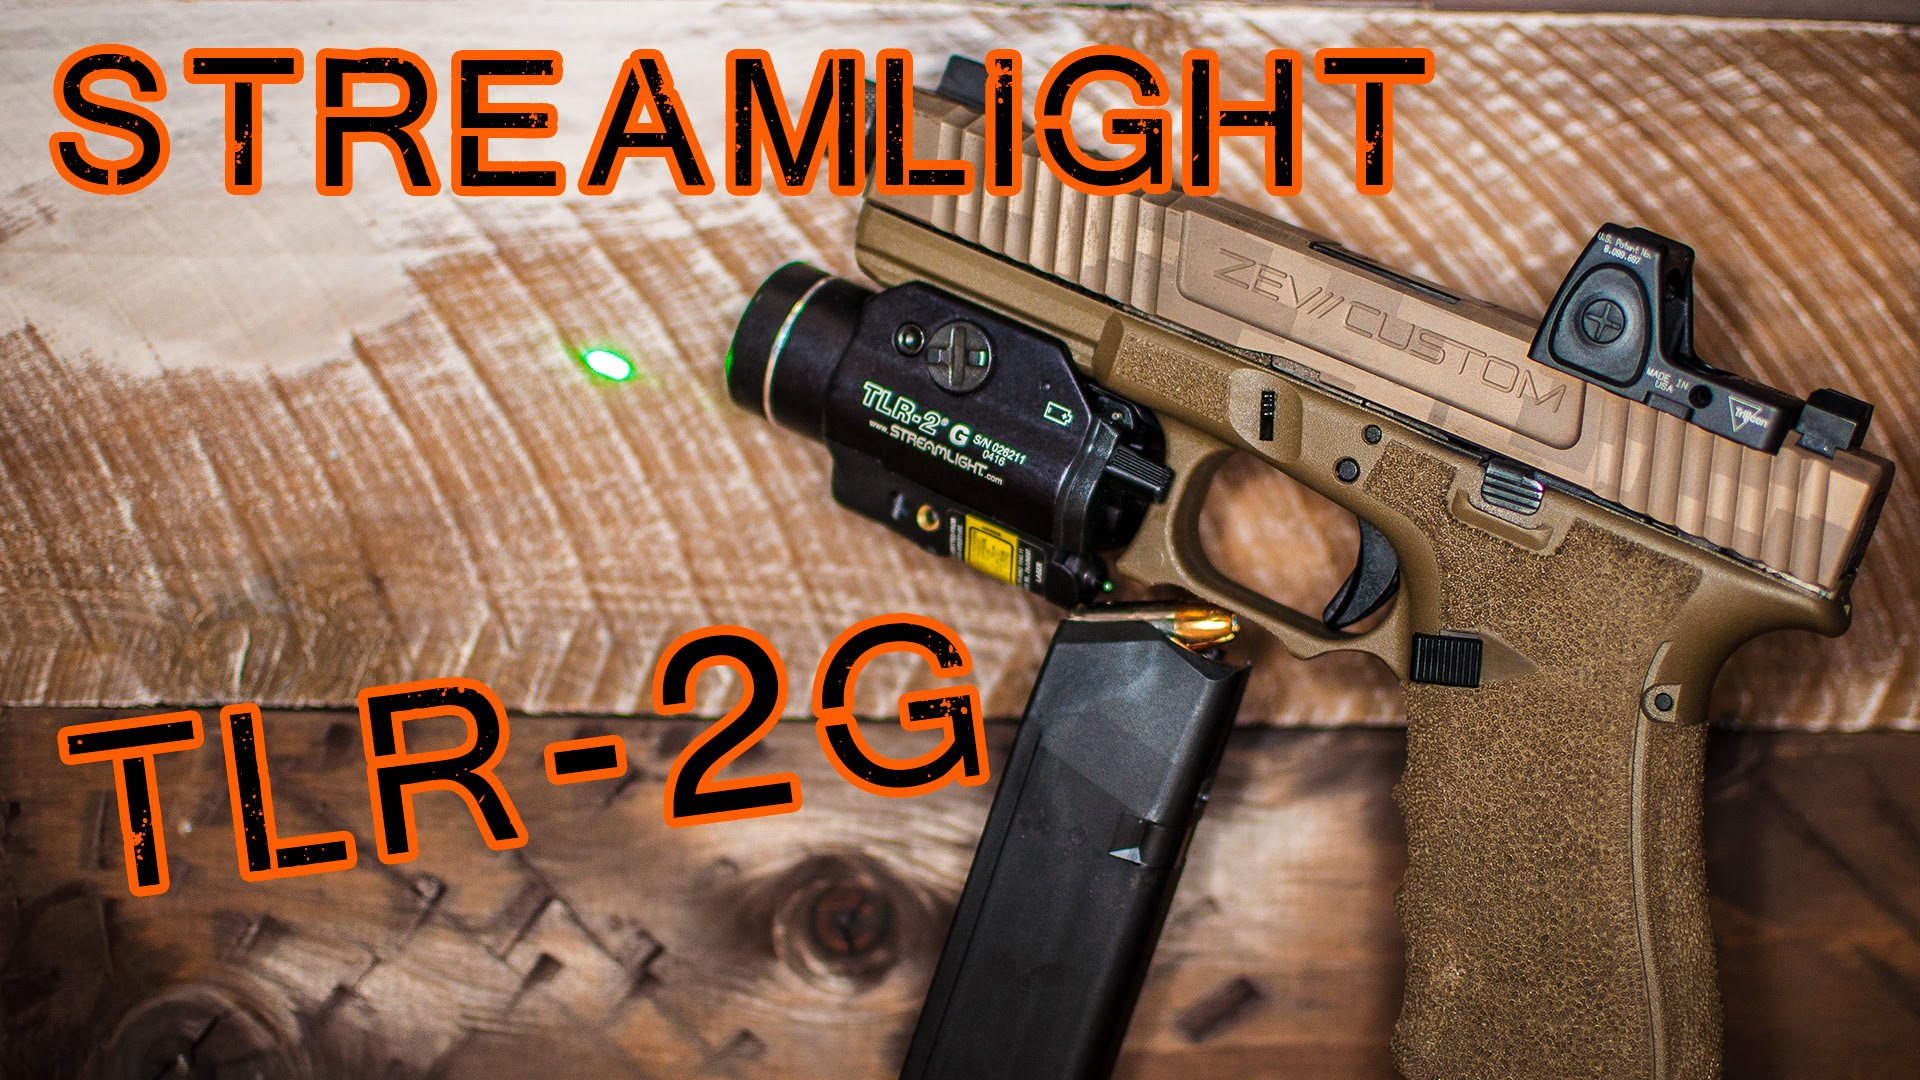 Streamlight TLR-2G Review - The Perfect Home Defense Weapon Light?